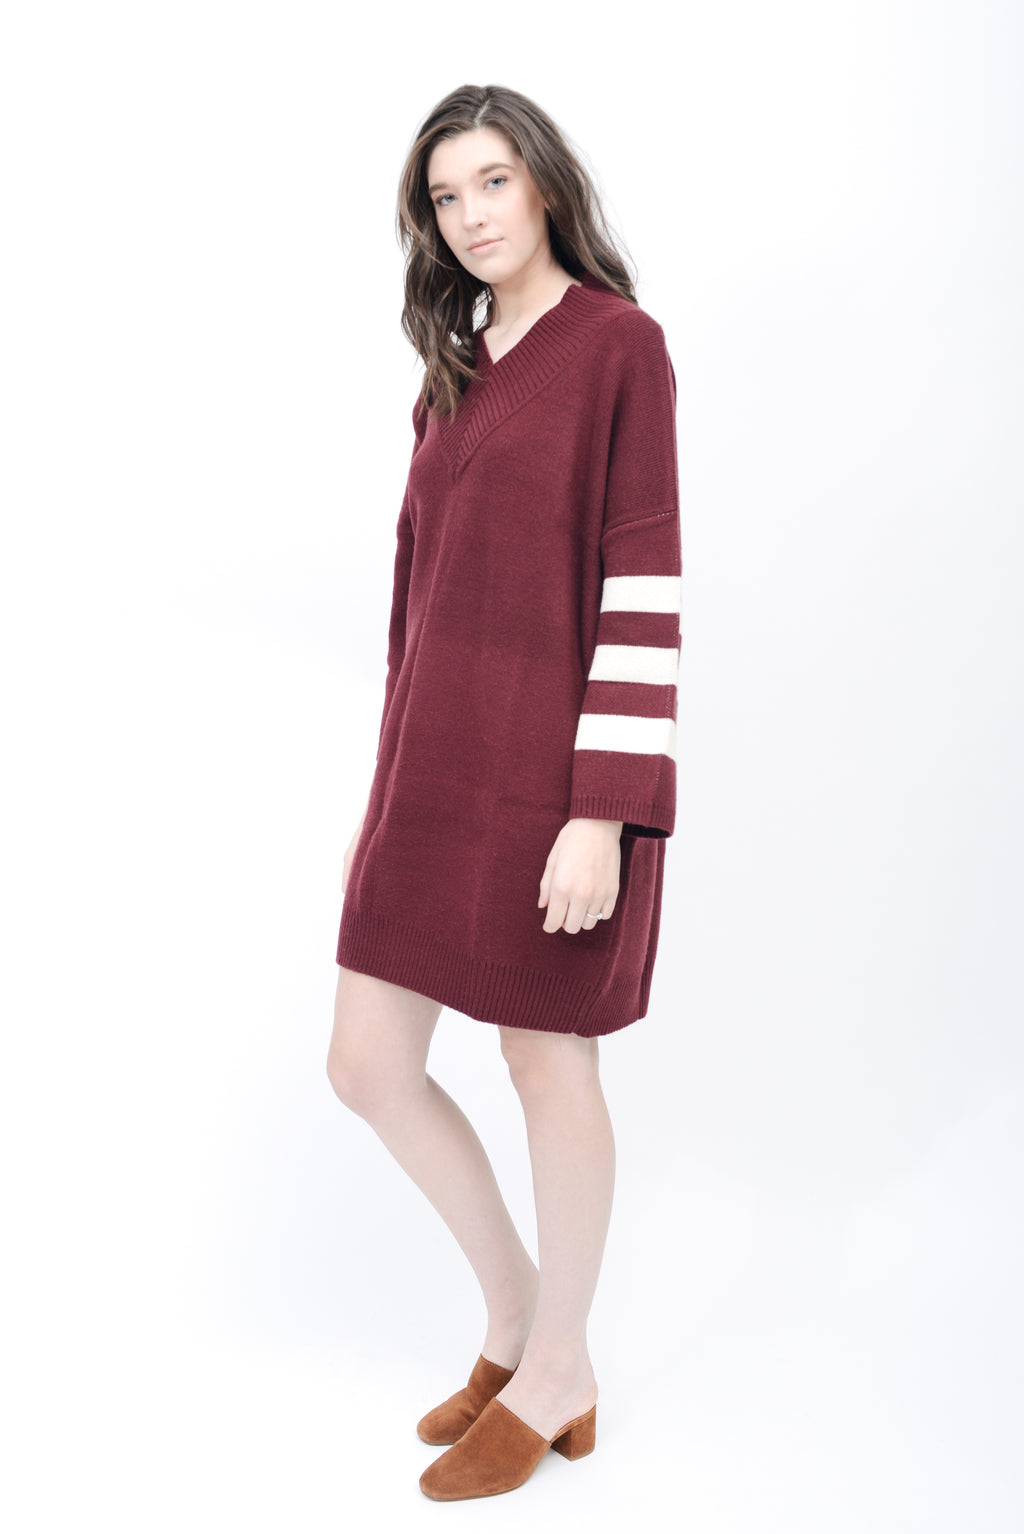 AGAIN | Romeo Sweater Dress